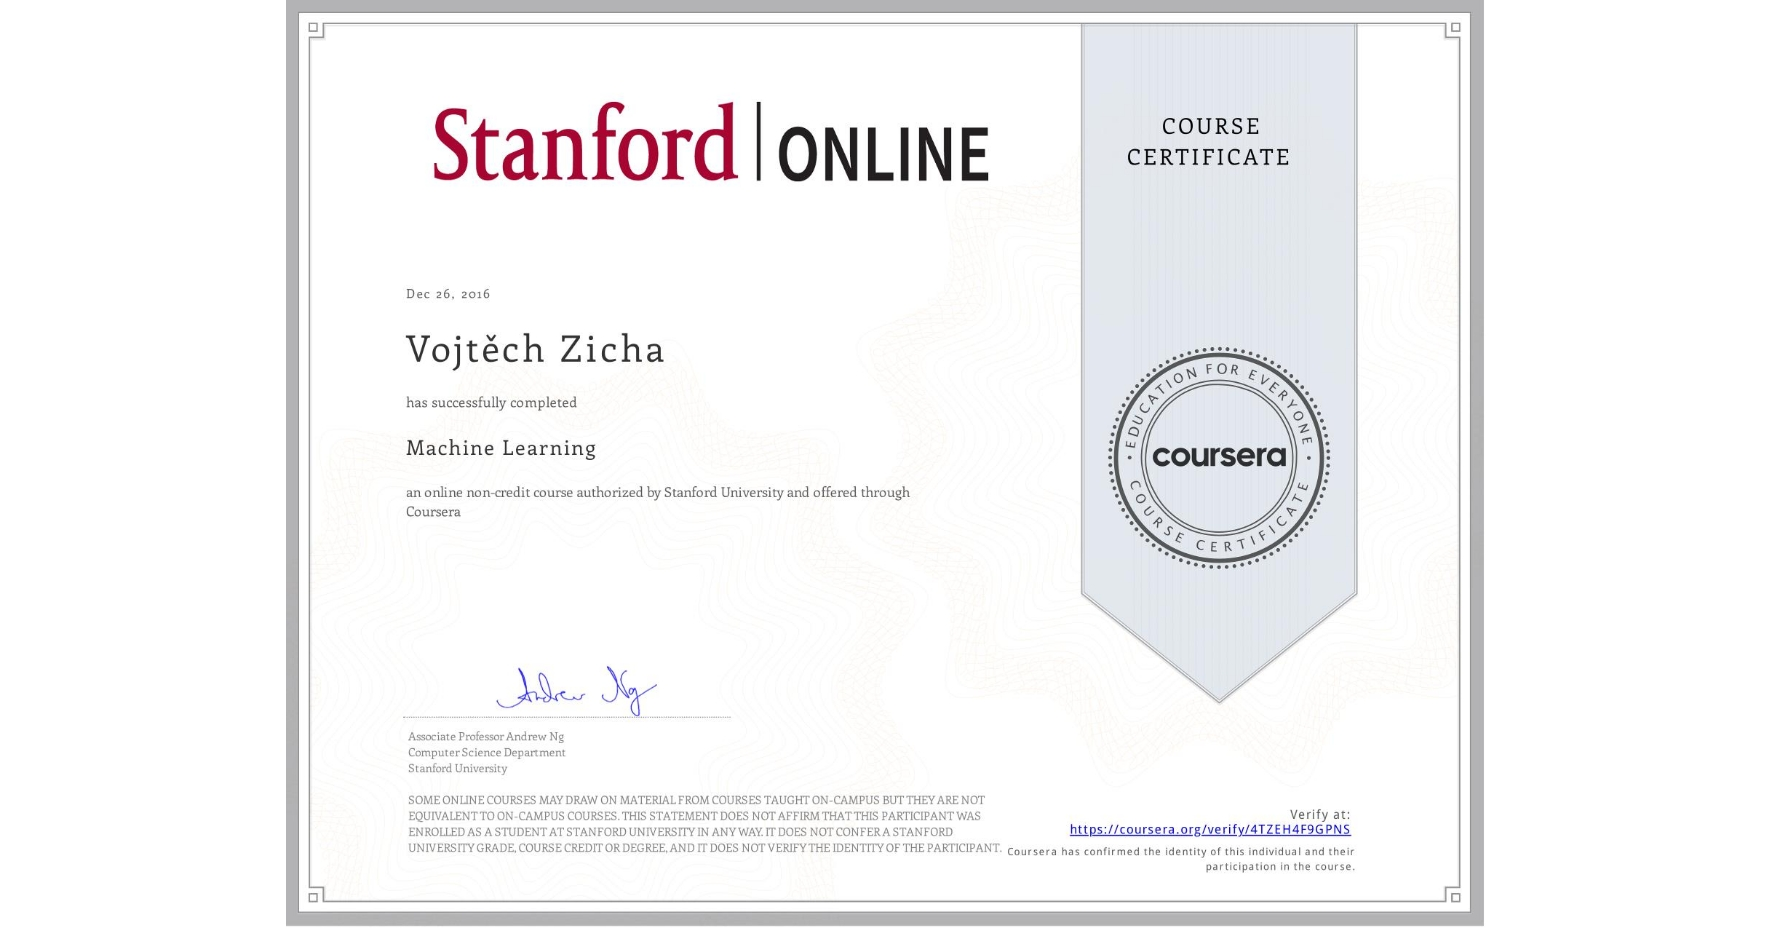 View certificate for Vojtěch Zicha, Machine Learning, an online non-credit course authorized by Stanford University and offered through Coursera